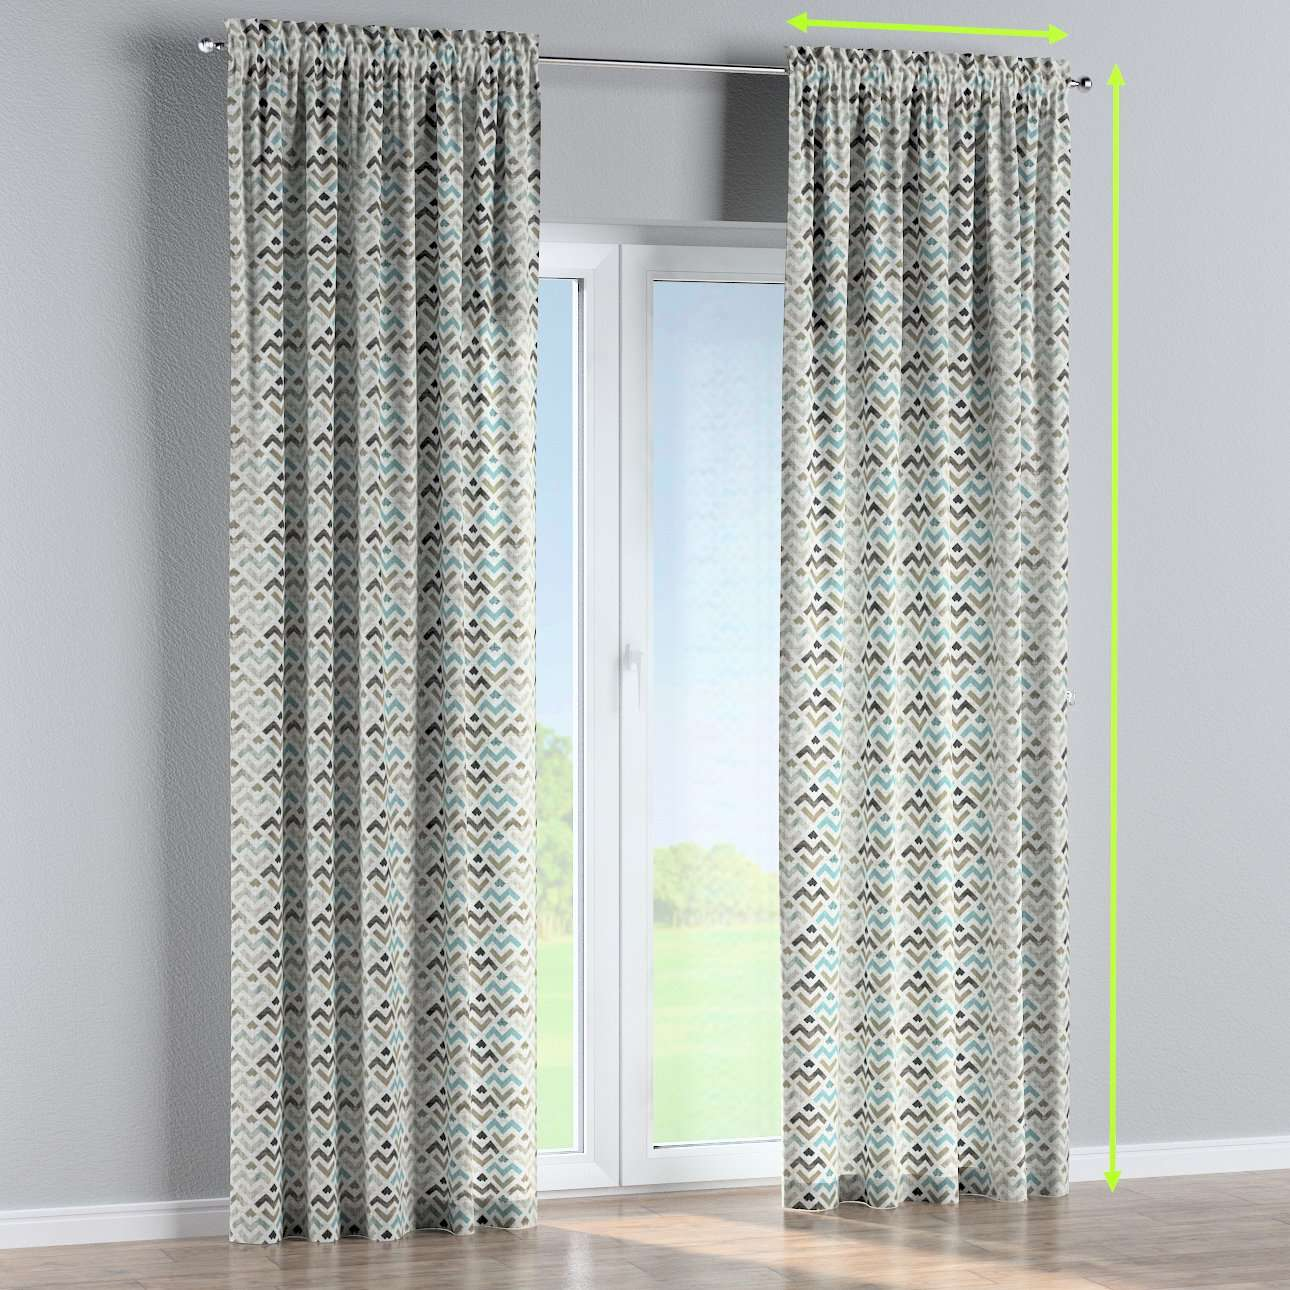 Slot and frill lined curtains in collection Modern, fabric: 141-93